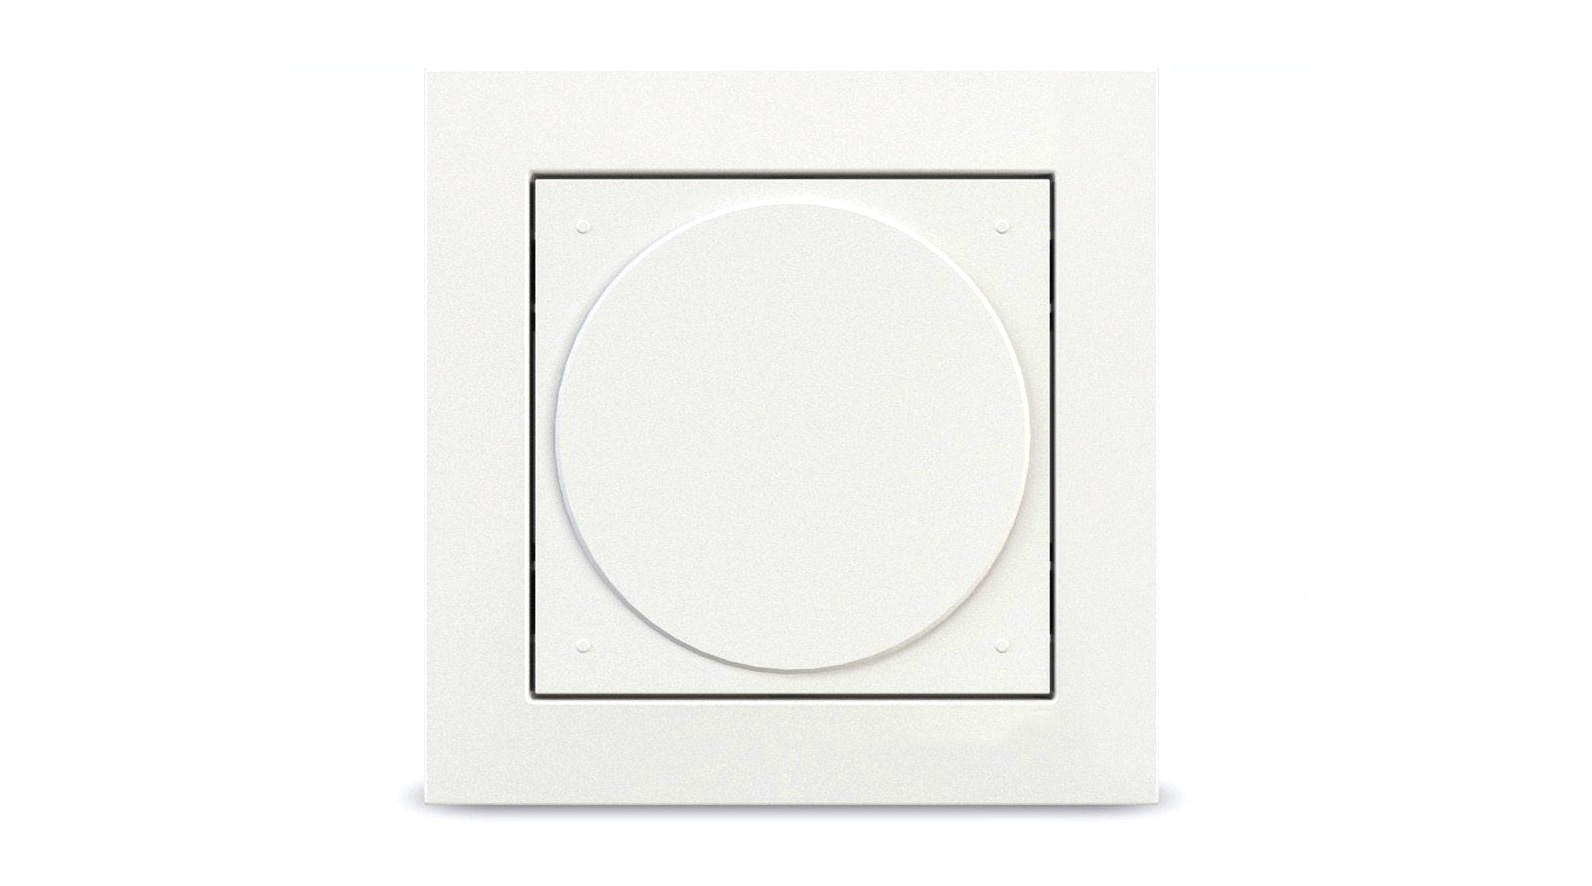 belkin s wemo light switch replaces the standard light switch in